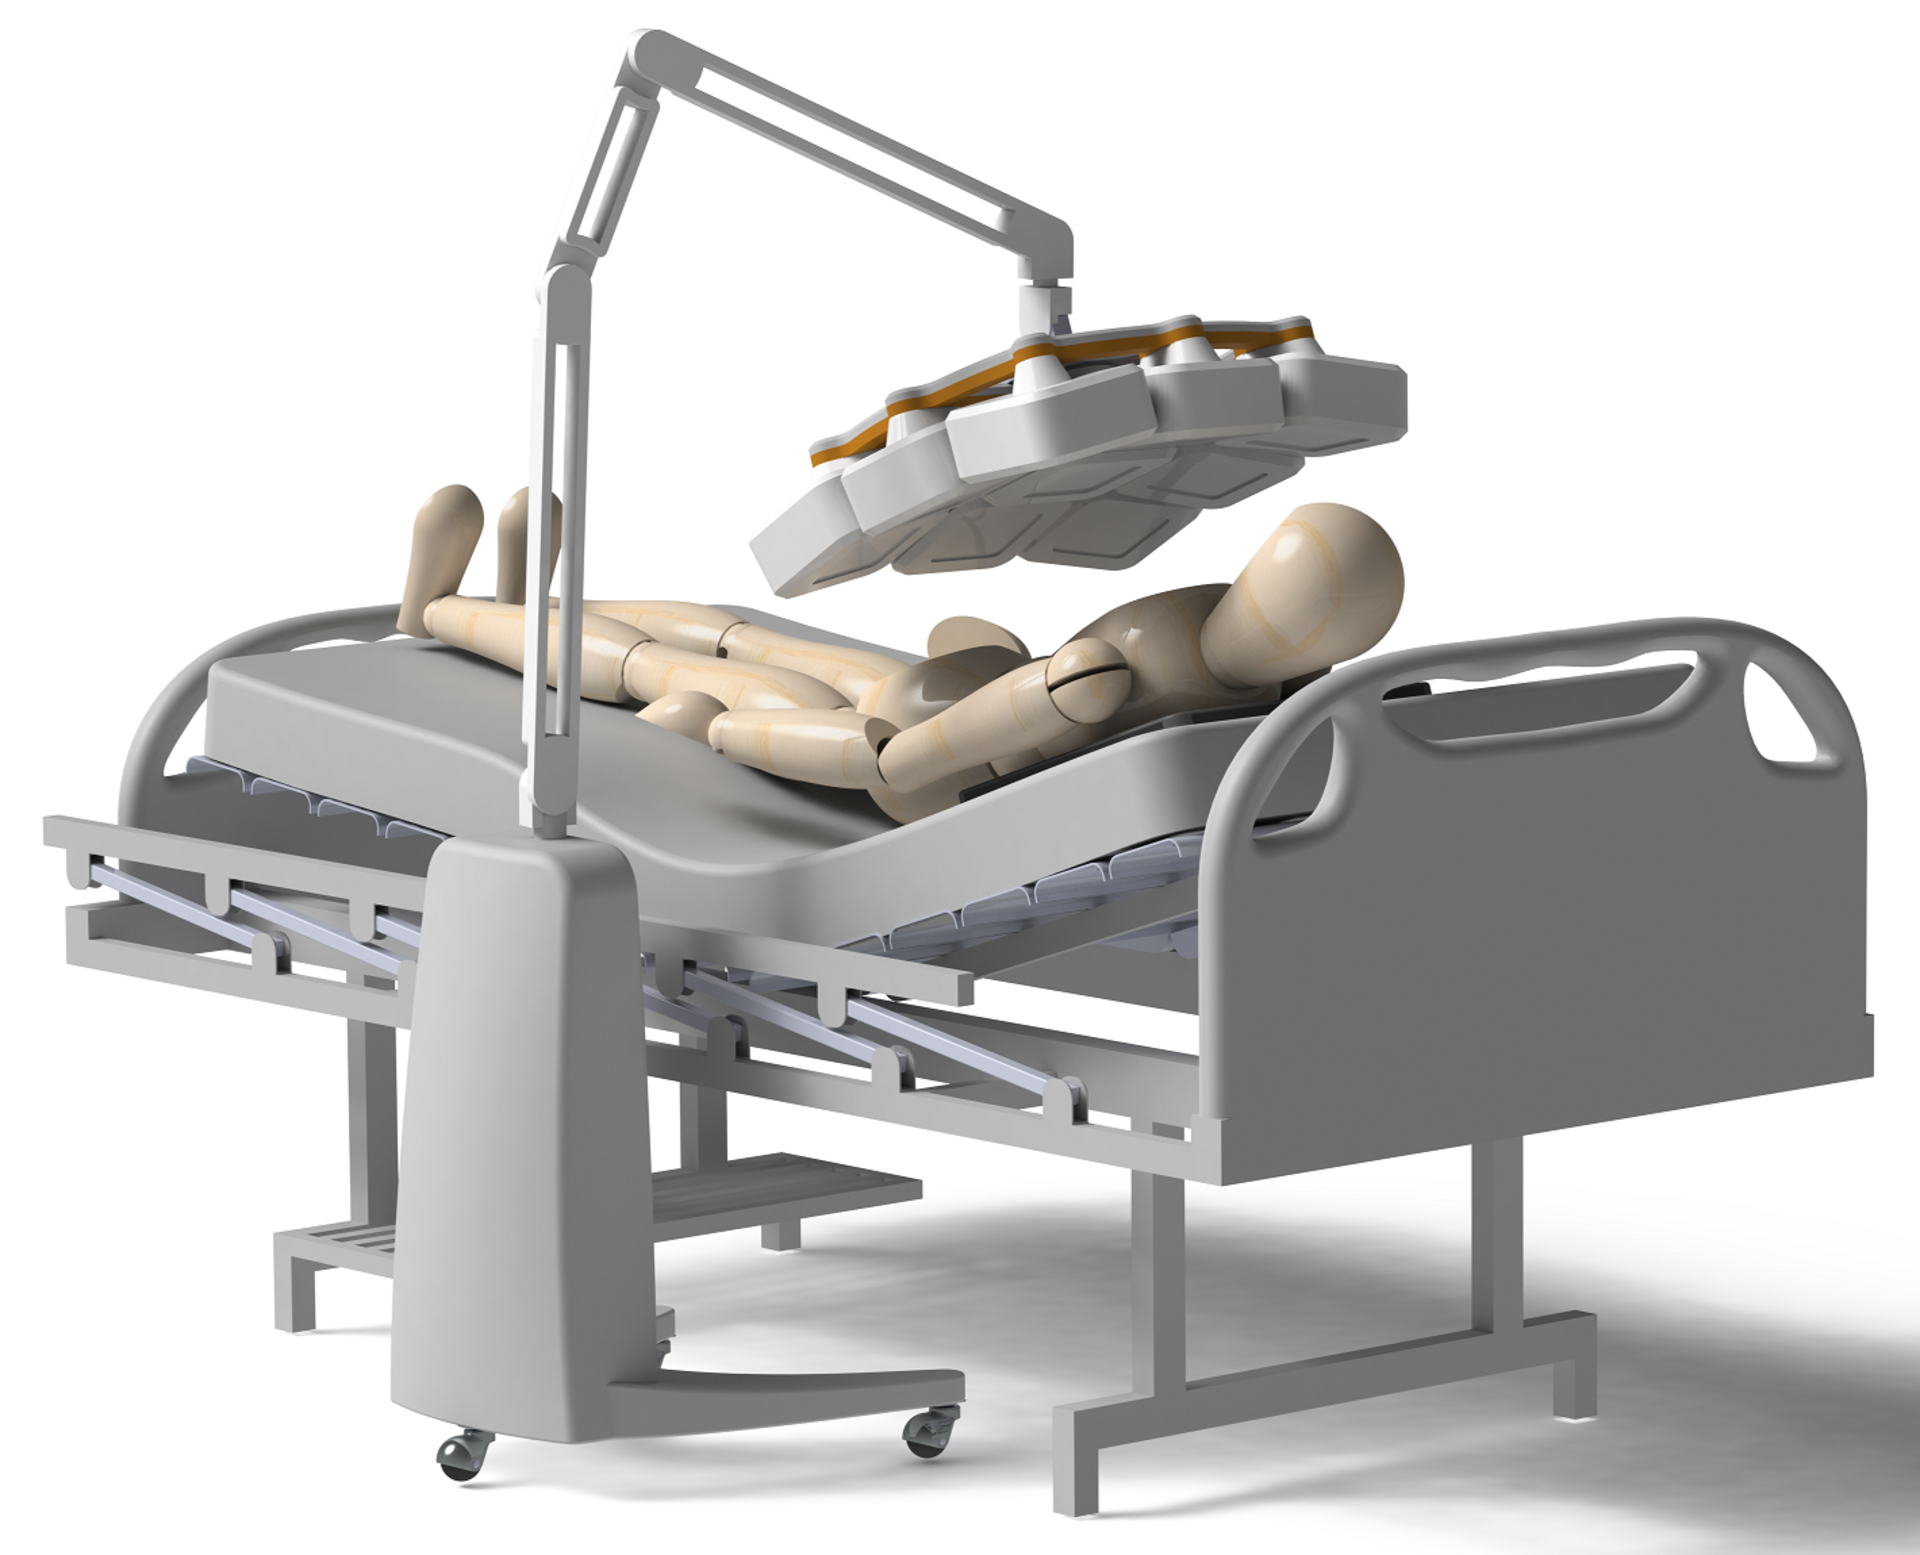 Adaptix is developing a bedside 3D X-ray machine